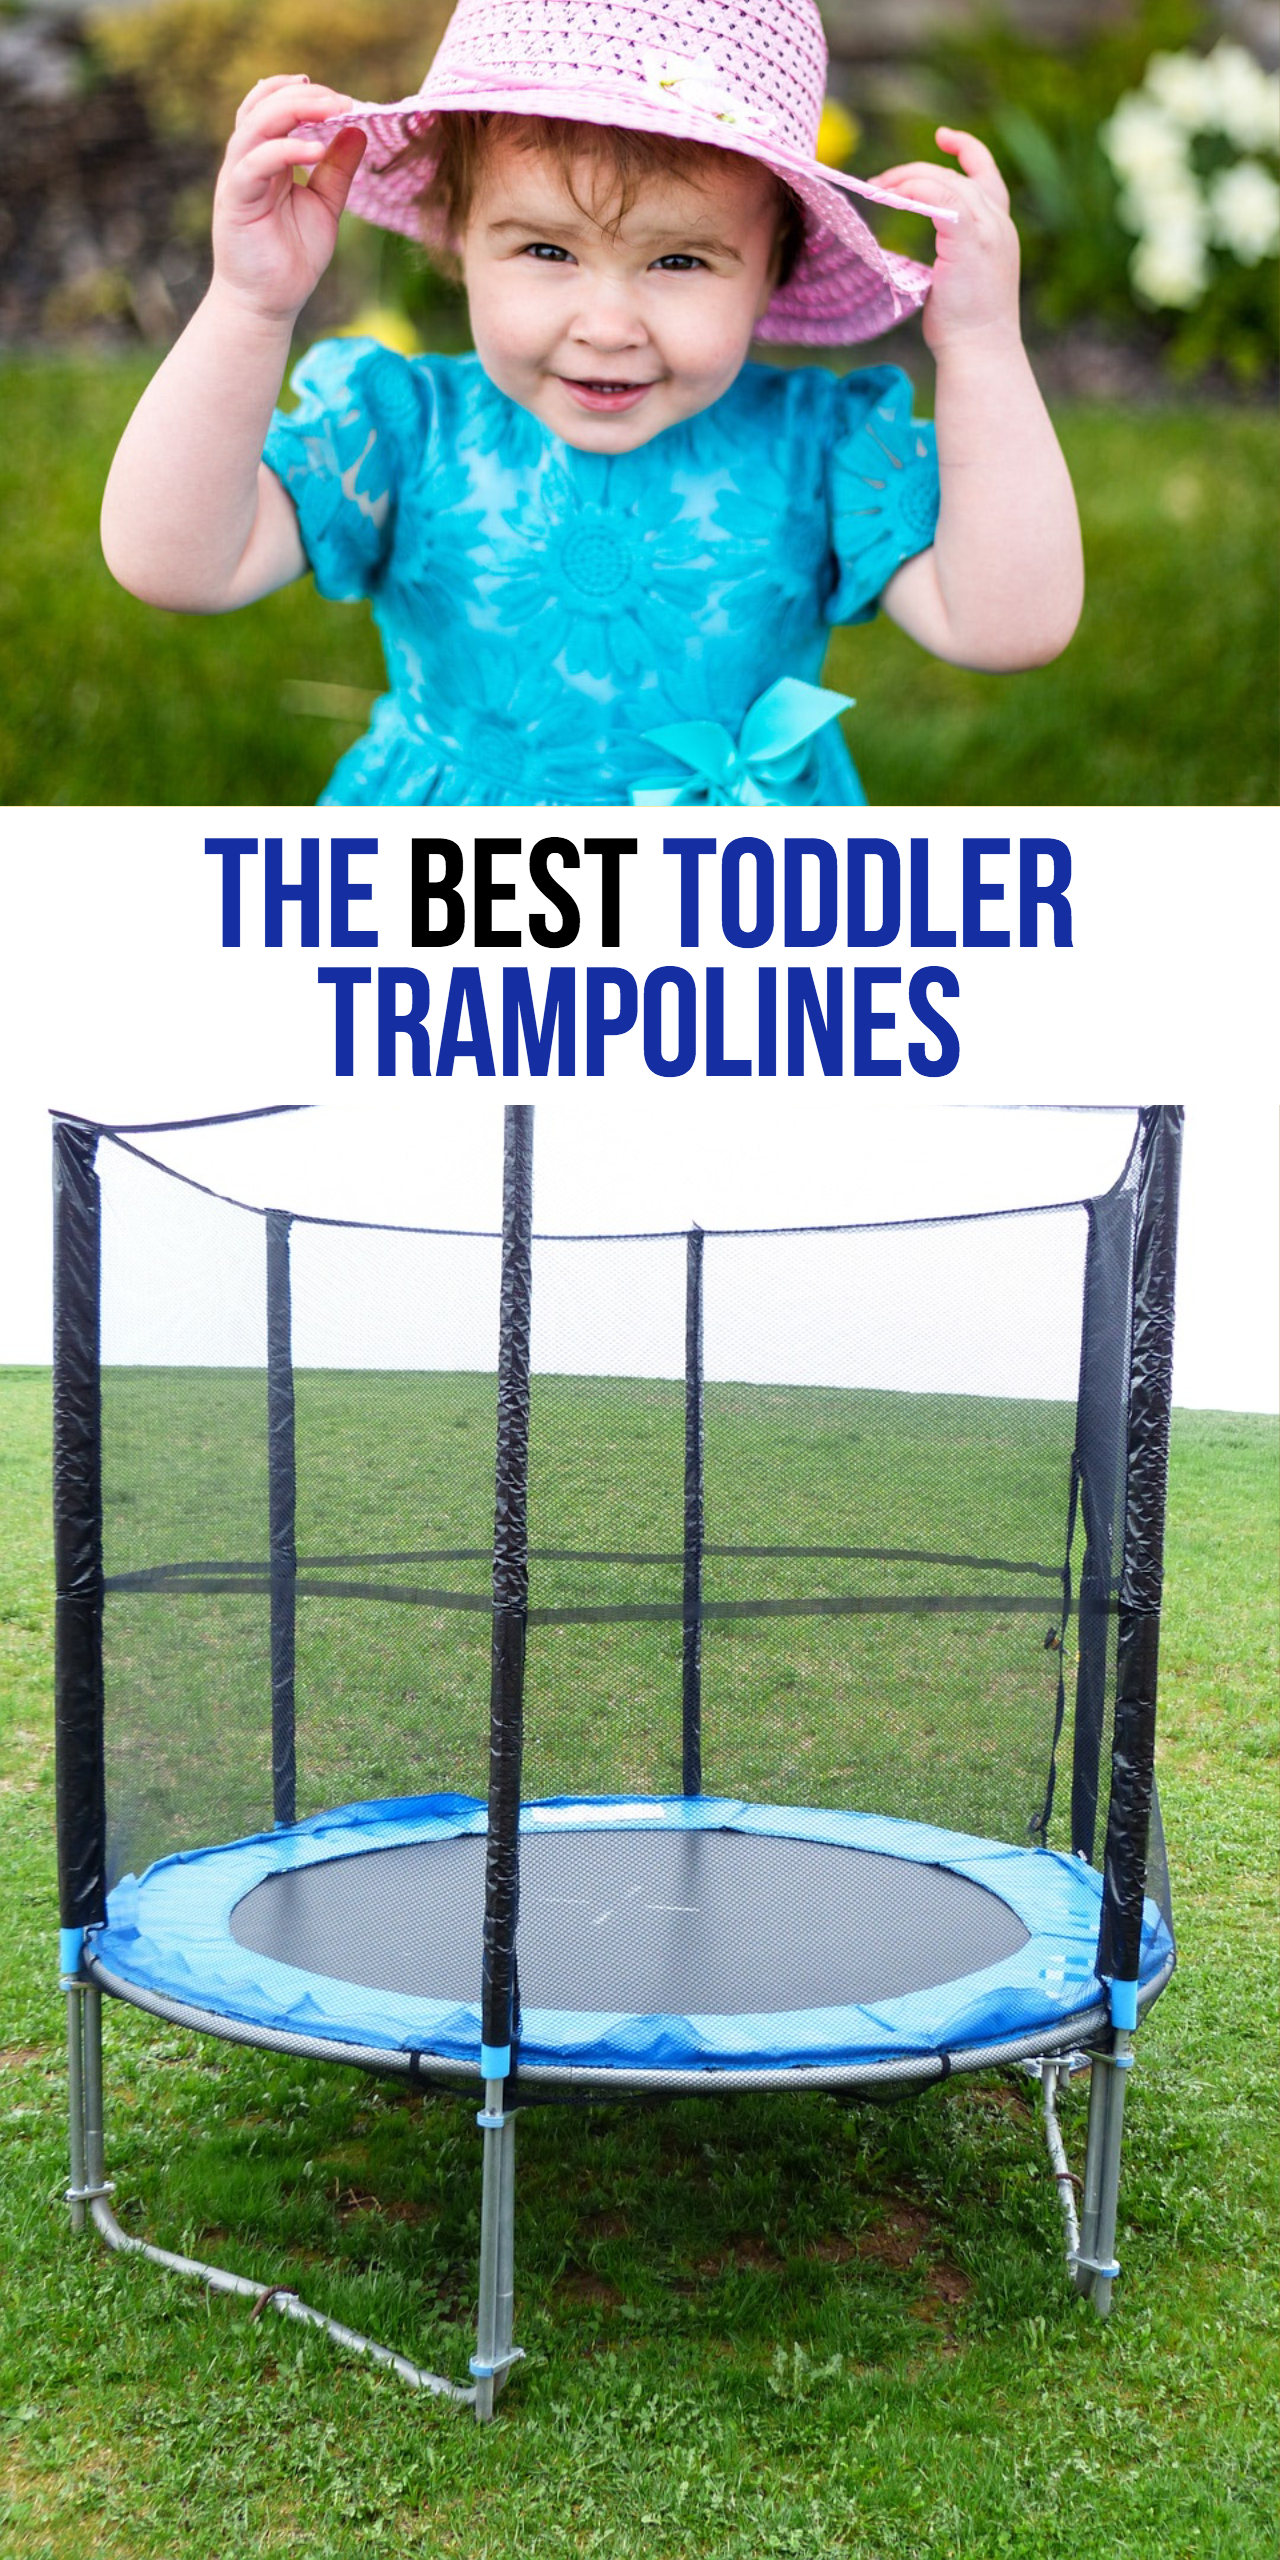 Mini Trampoline Kids | Best Toddler Trampoline | Mini Trampoline Ideas | Toddler Trampoline Little Tykes | #trampoline